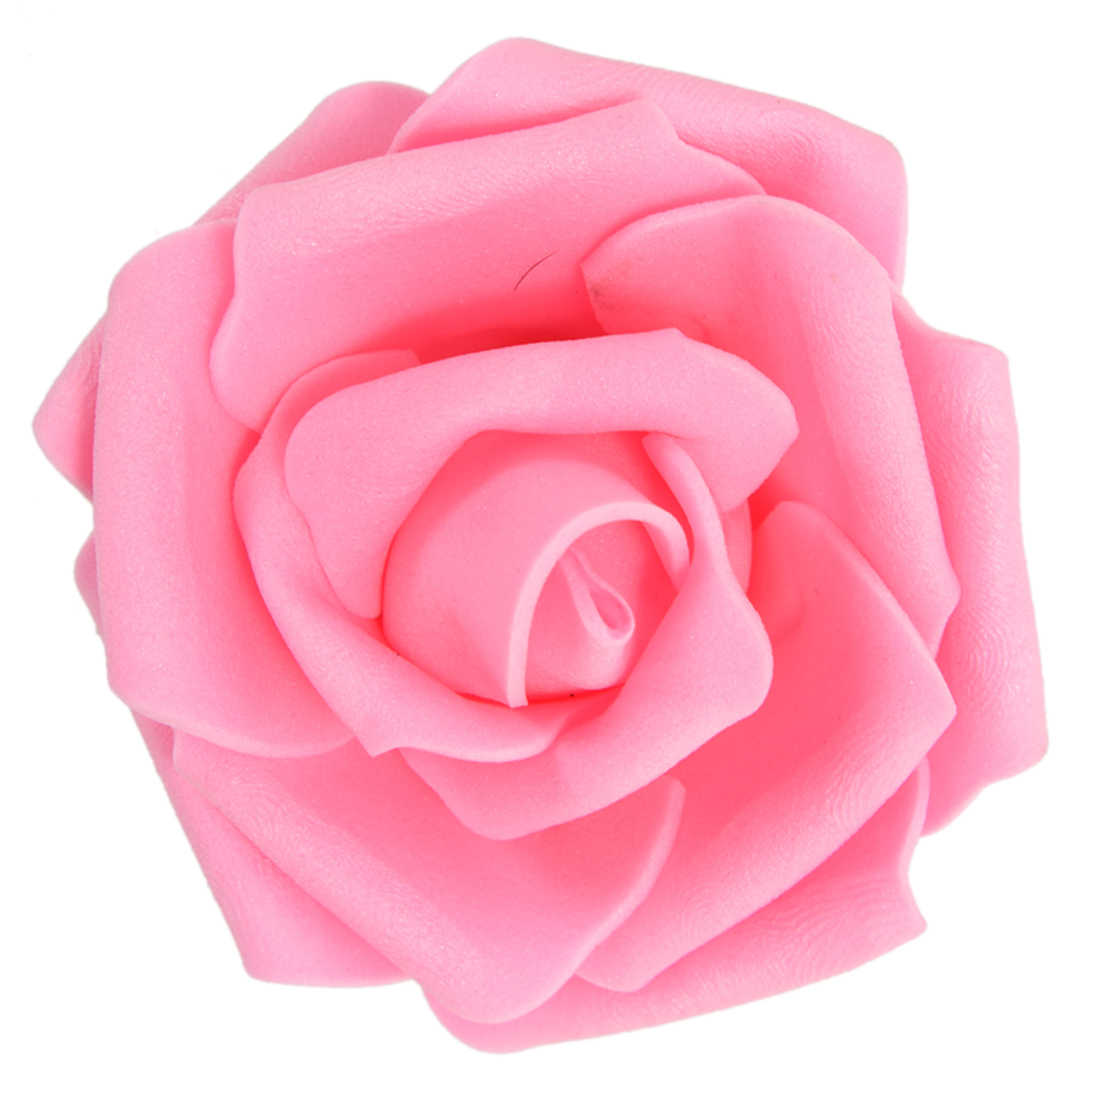 ... 100PCS Foam Rose Flower Bud Wedding Party Decorations Artificial Flower  Diy Craft Red 17 Colors 749f60a3bf